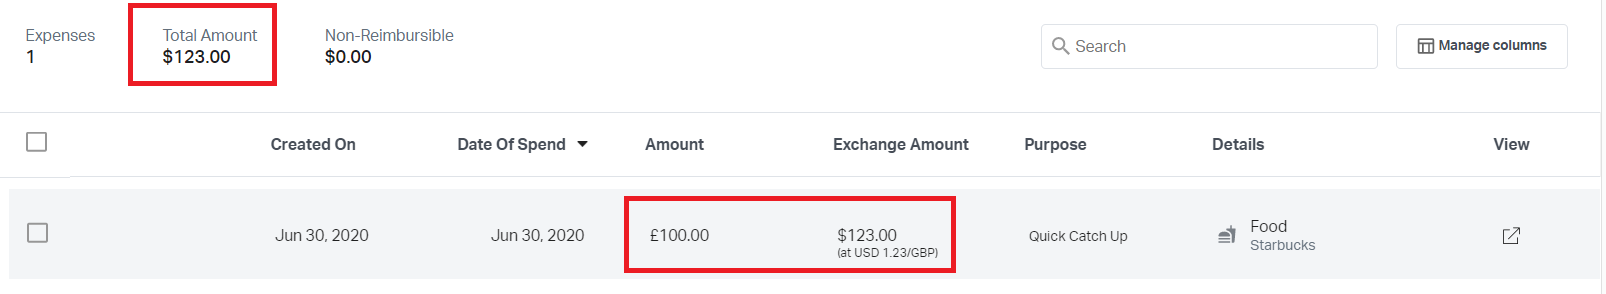 Expenses created in foreign currency on Fyle